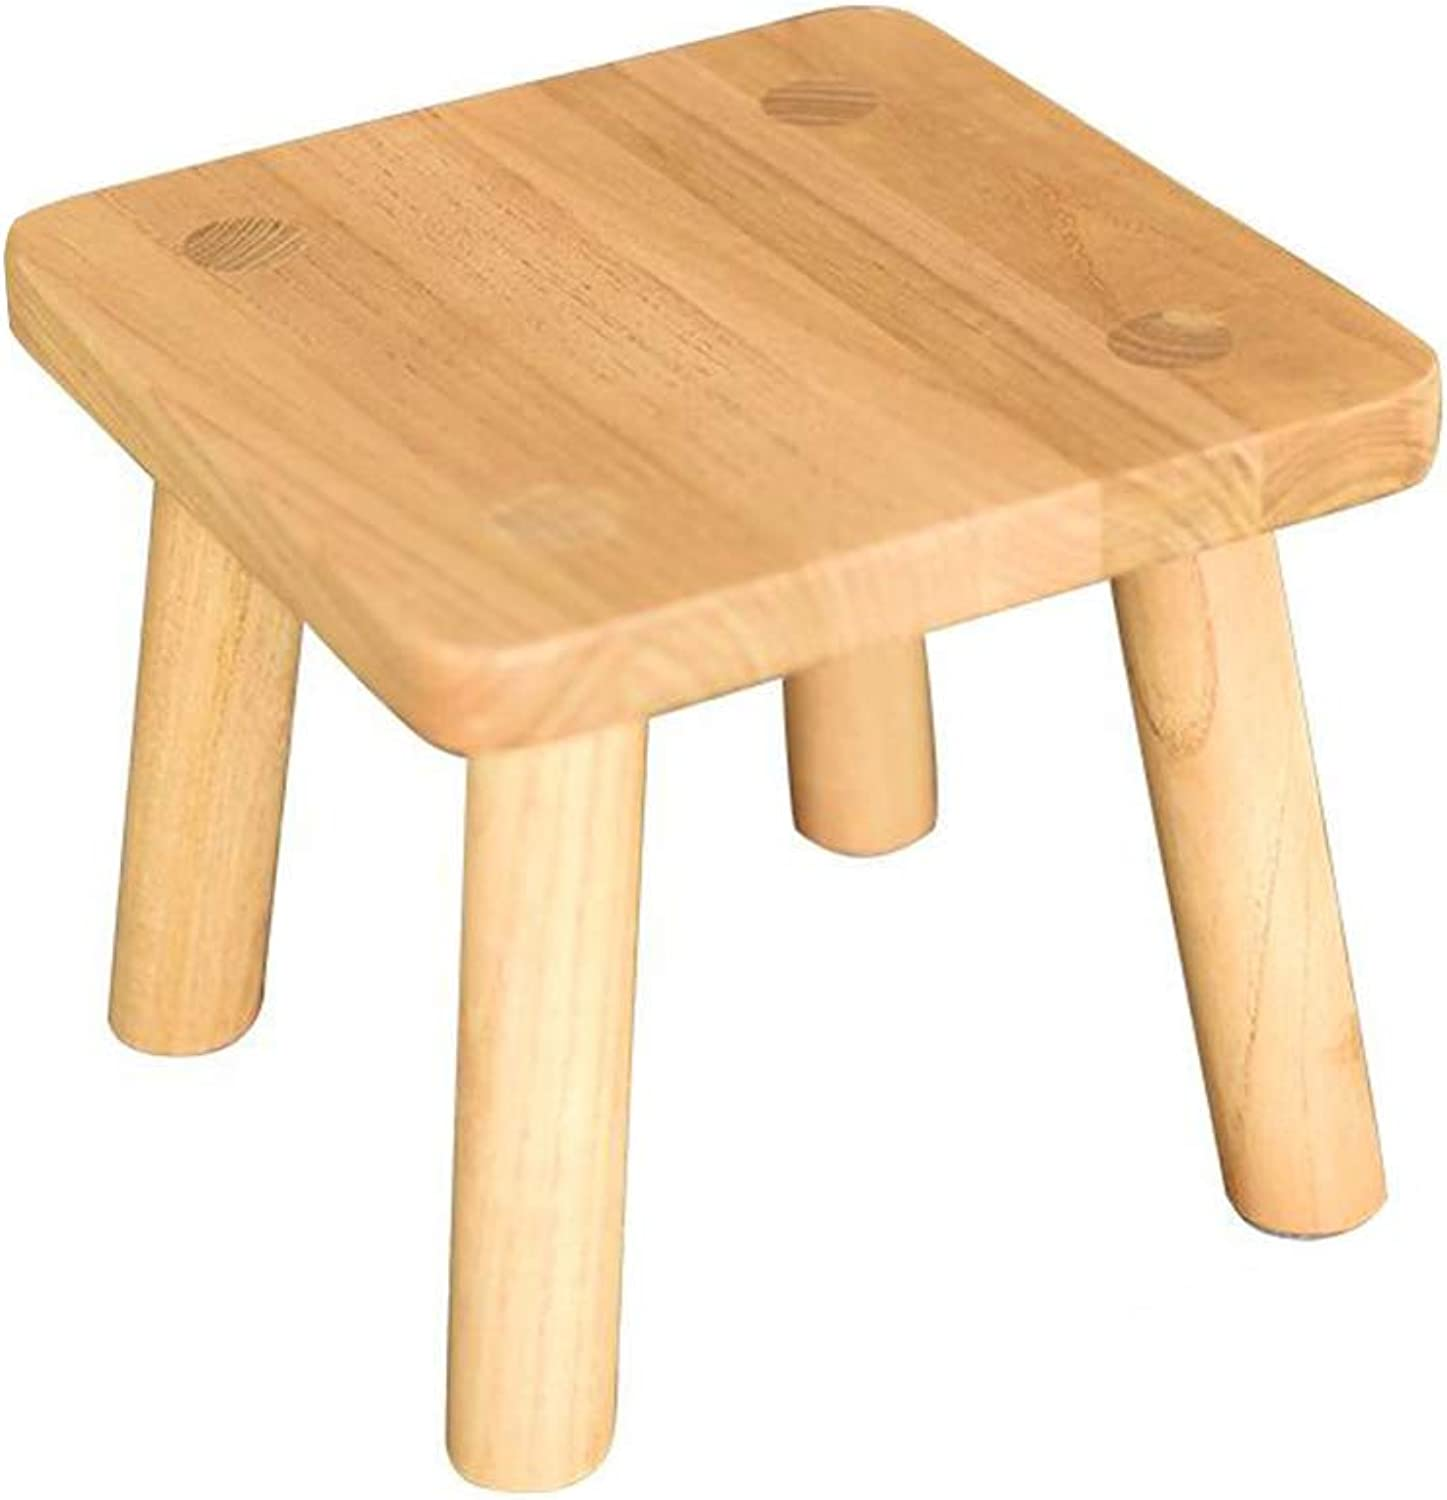 HQCC DLDL Solid Wood Small Round Stool Home Wood Low Stool Fashion shoes Bench (color   Natural)